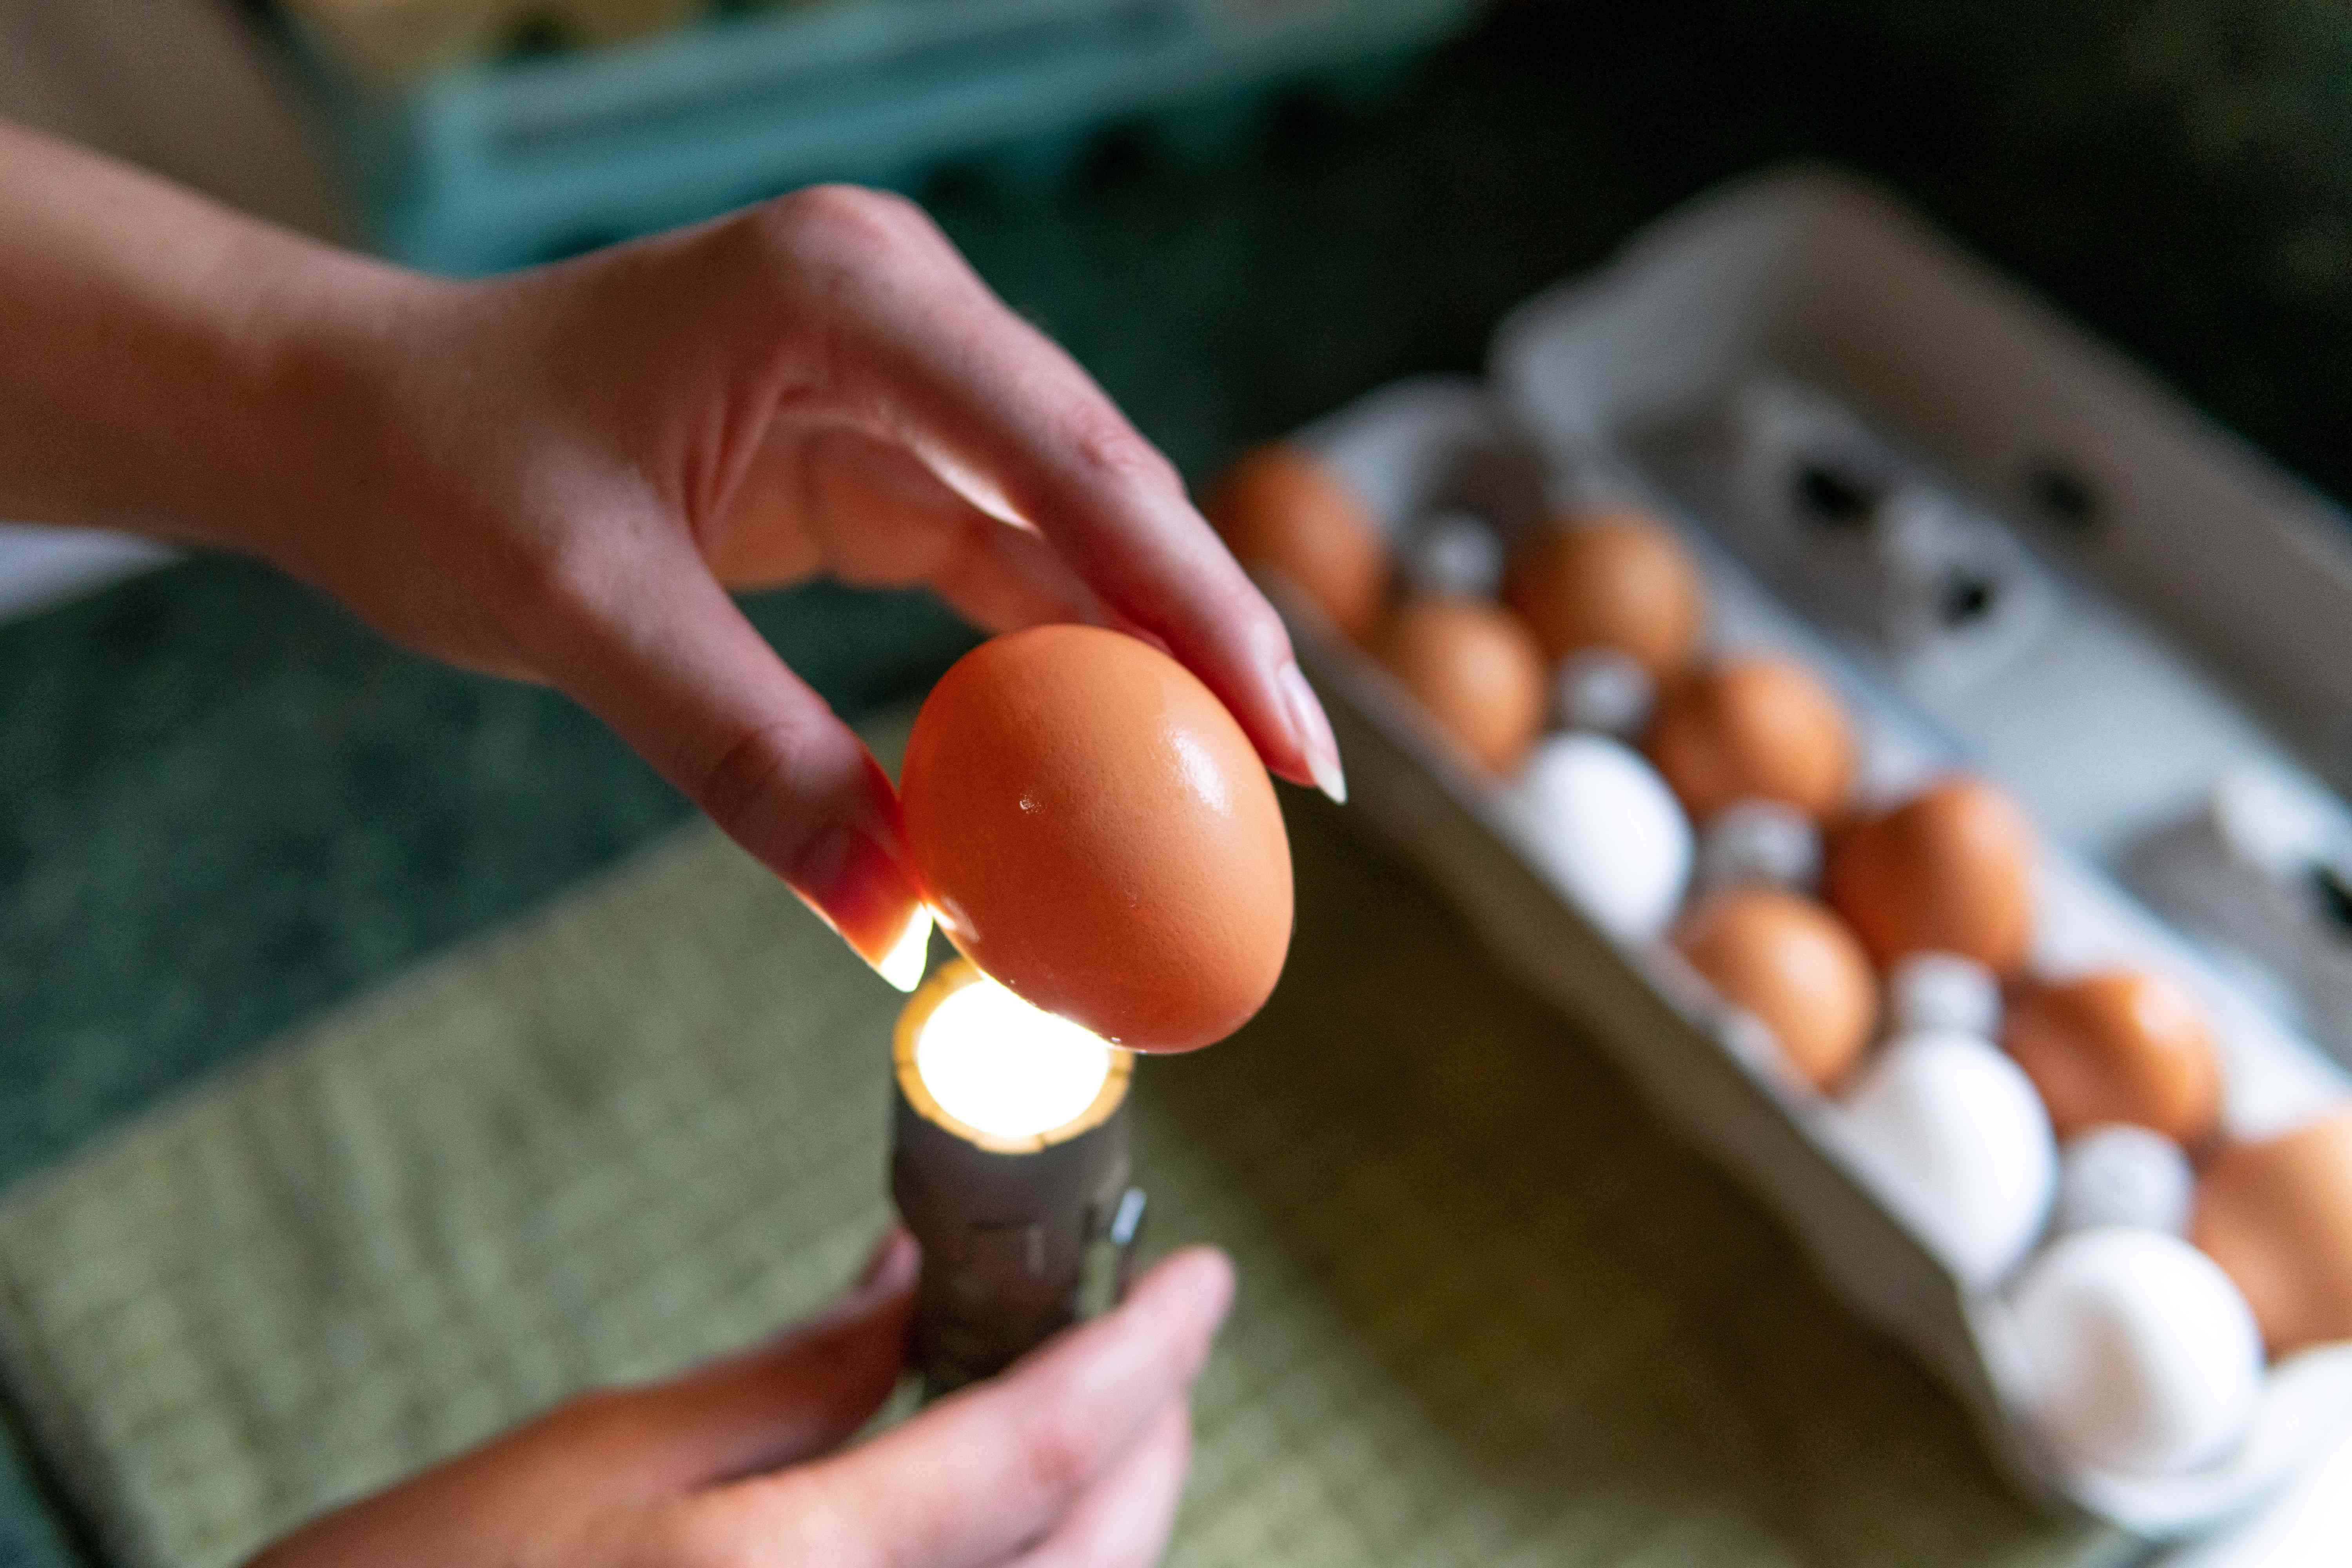 checking eggs with flashlight